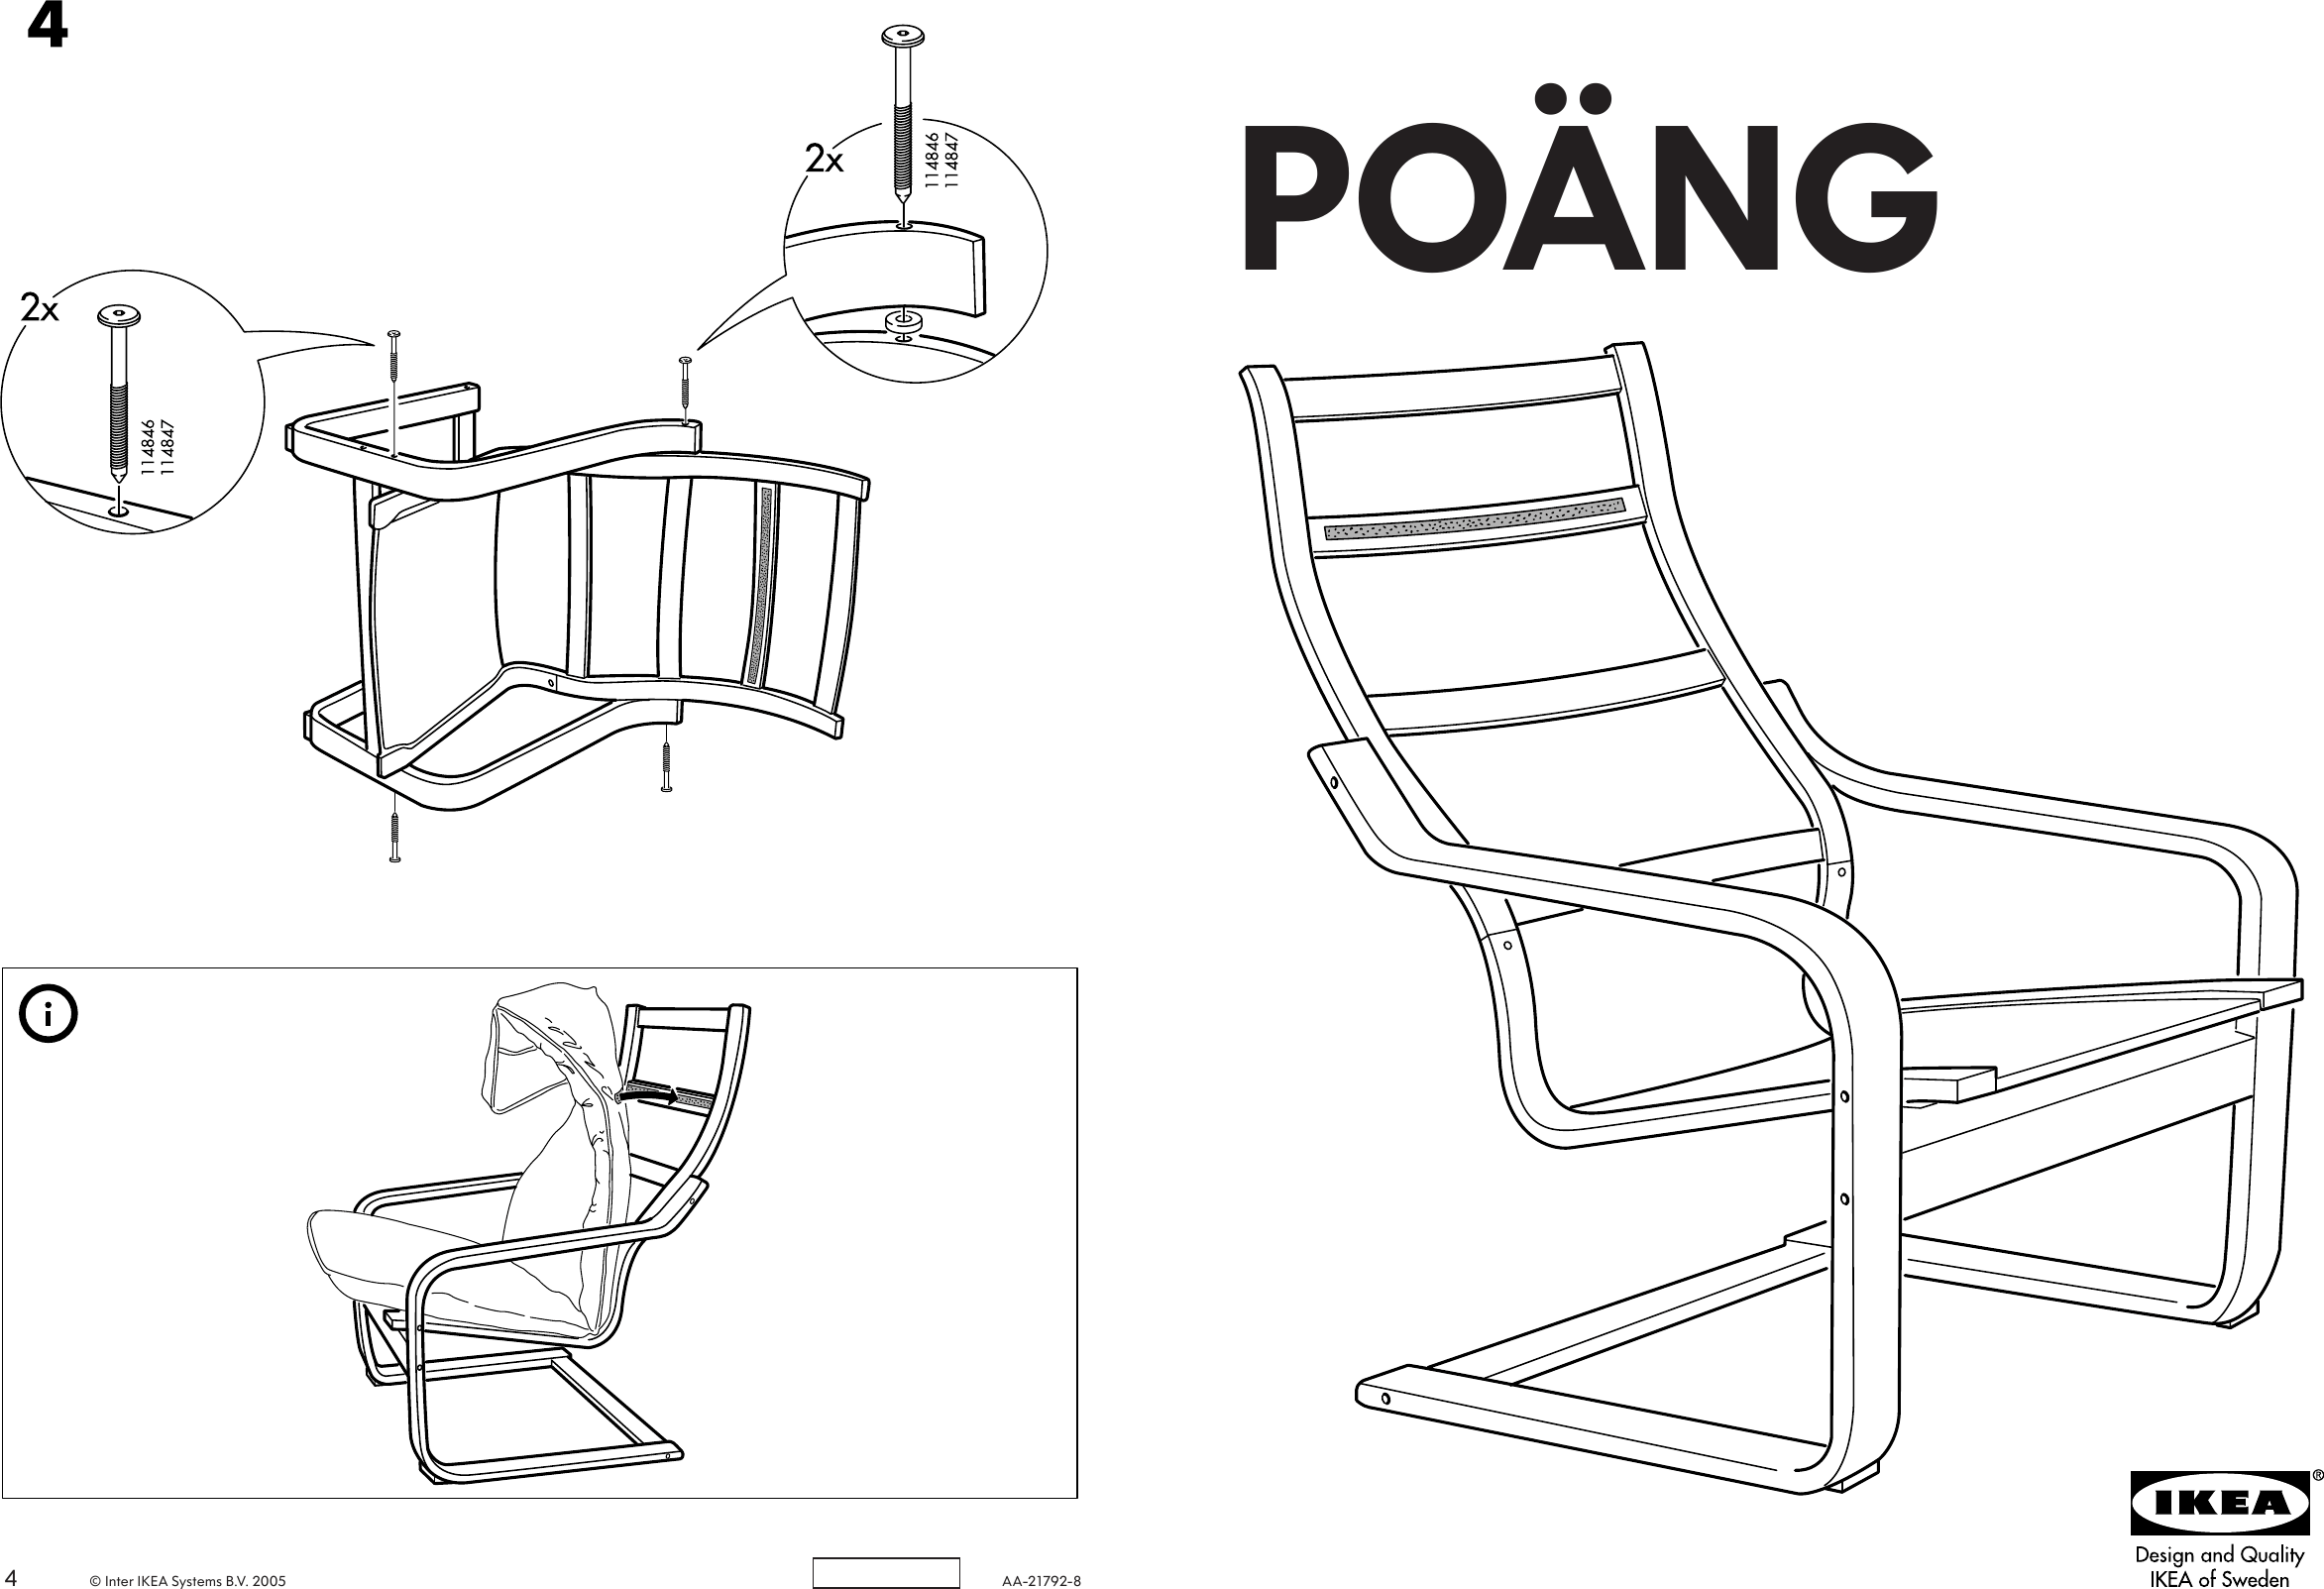 Ikea Poang Chair Frame Assembly Instruction